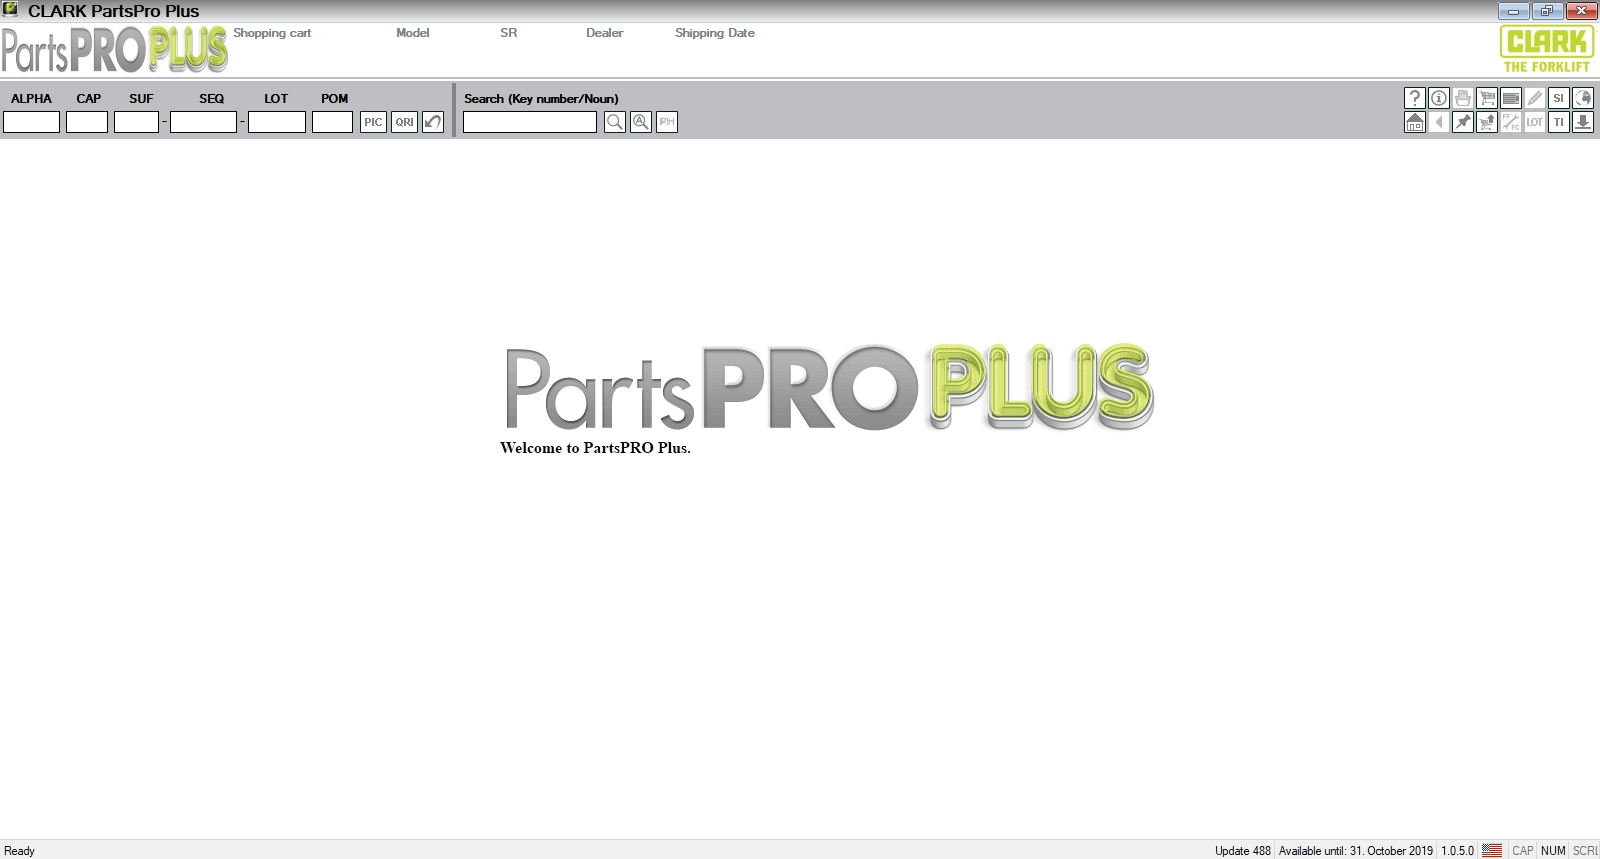 Clark Forklift Parts Pro Plus V488  07 2019